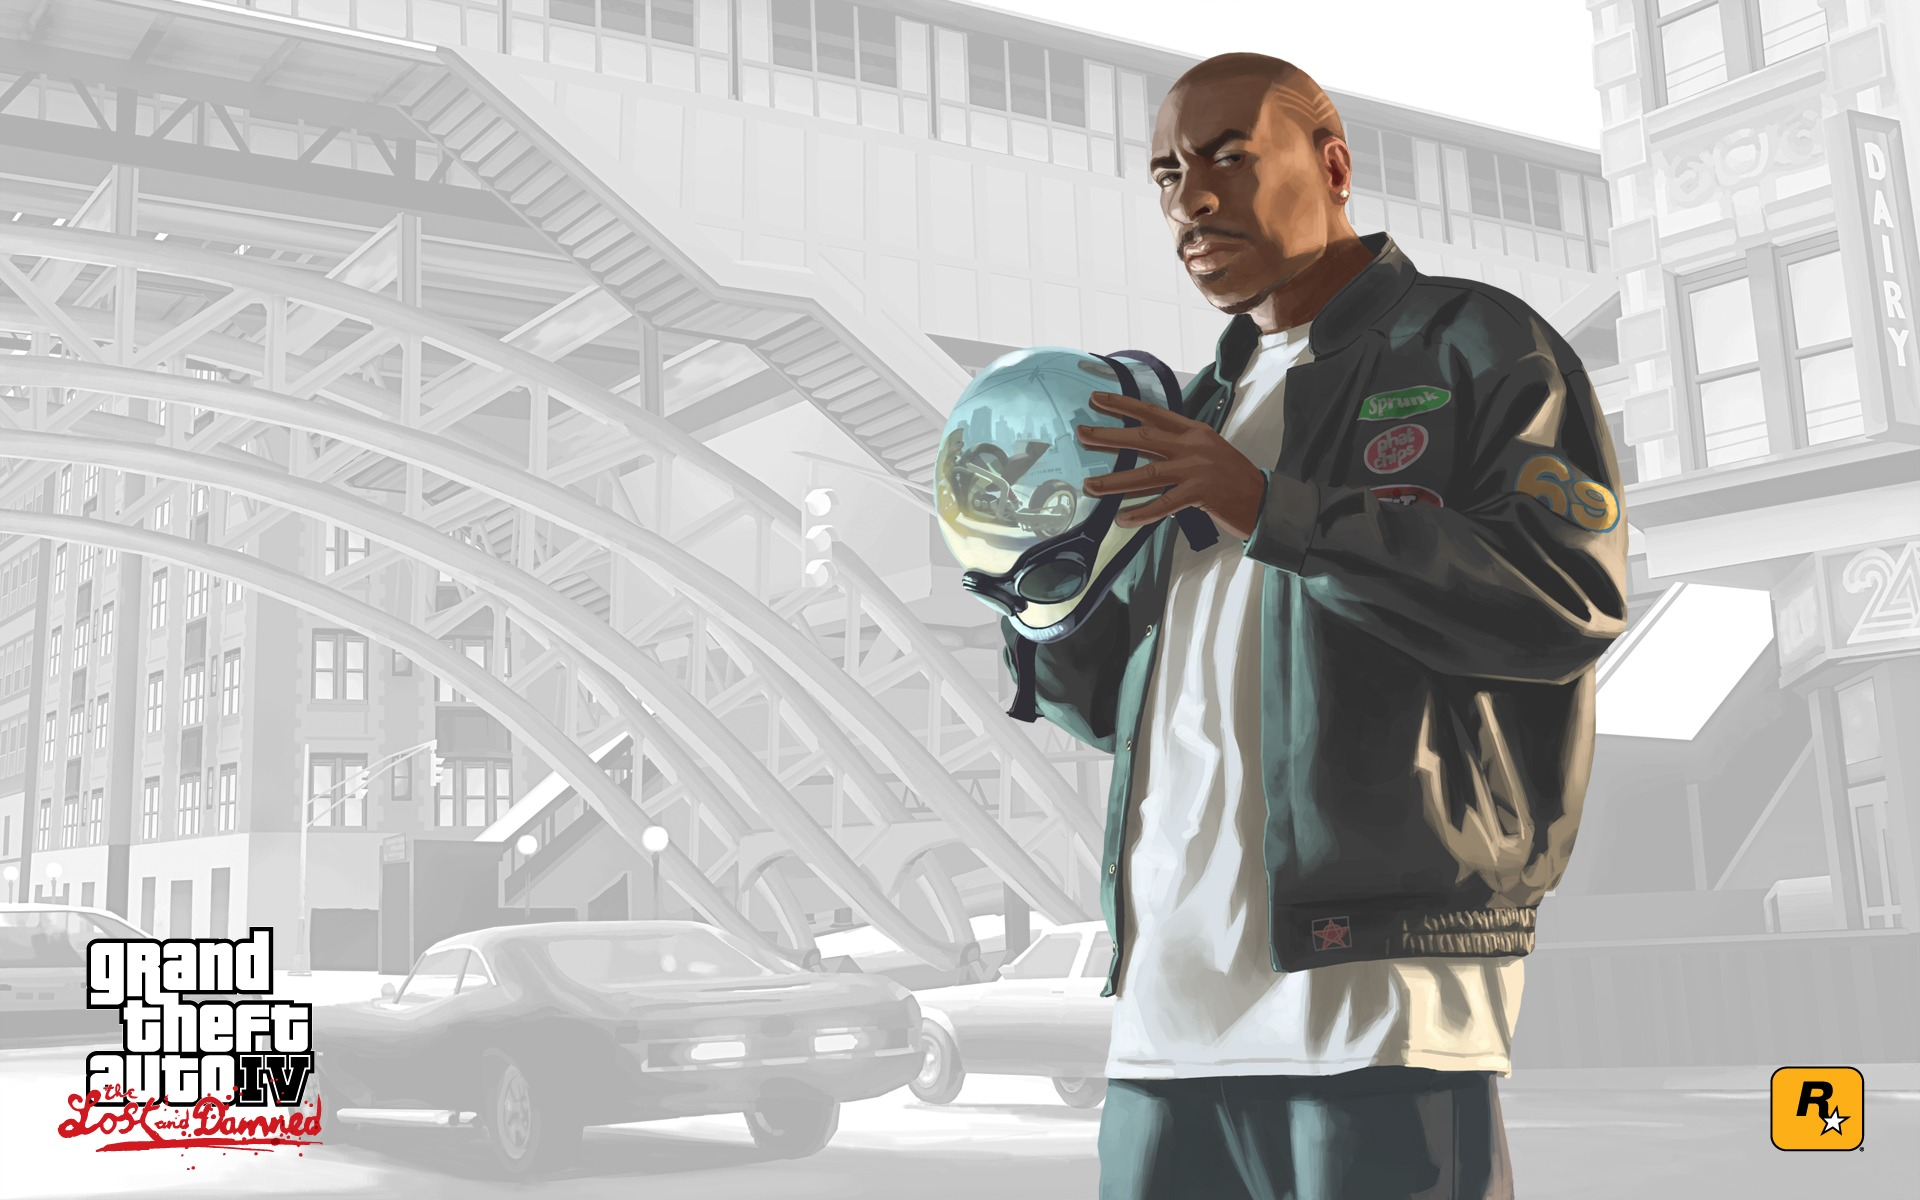 GTA The Lost And Damned Wallpaper GTA IV Games Wallpapers in jpg